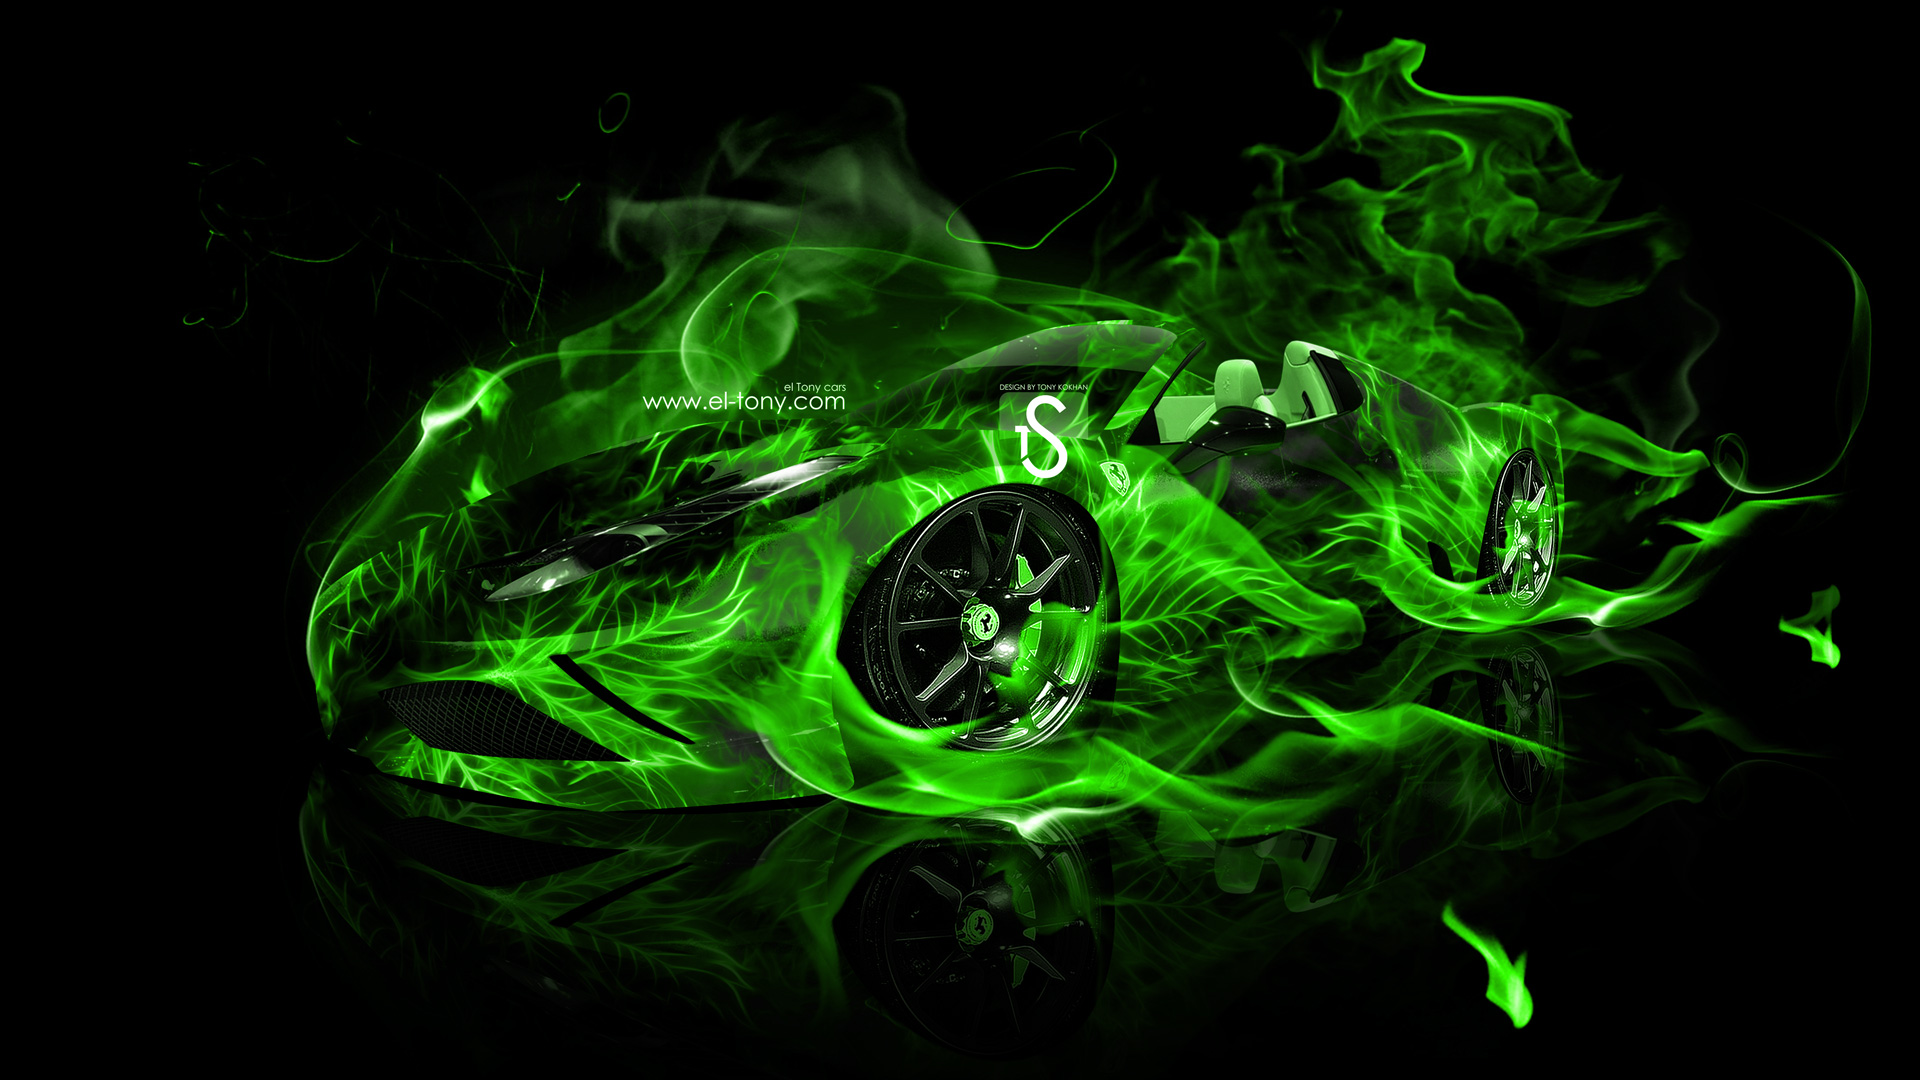 Ferrari 458 Spider Green Fire Car 2013 HD Wallpapers design by Tony 1920x1080